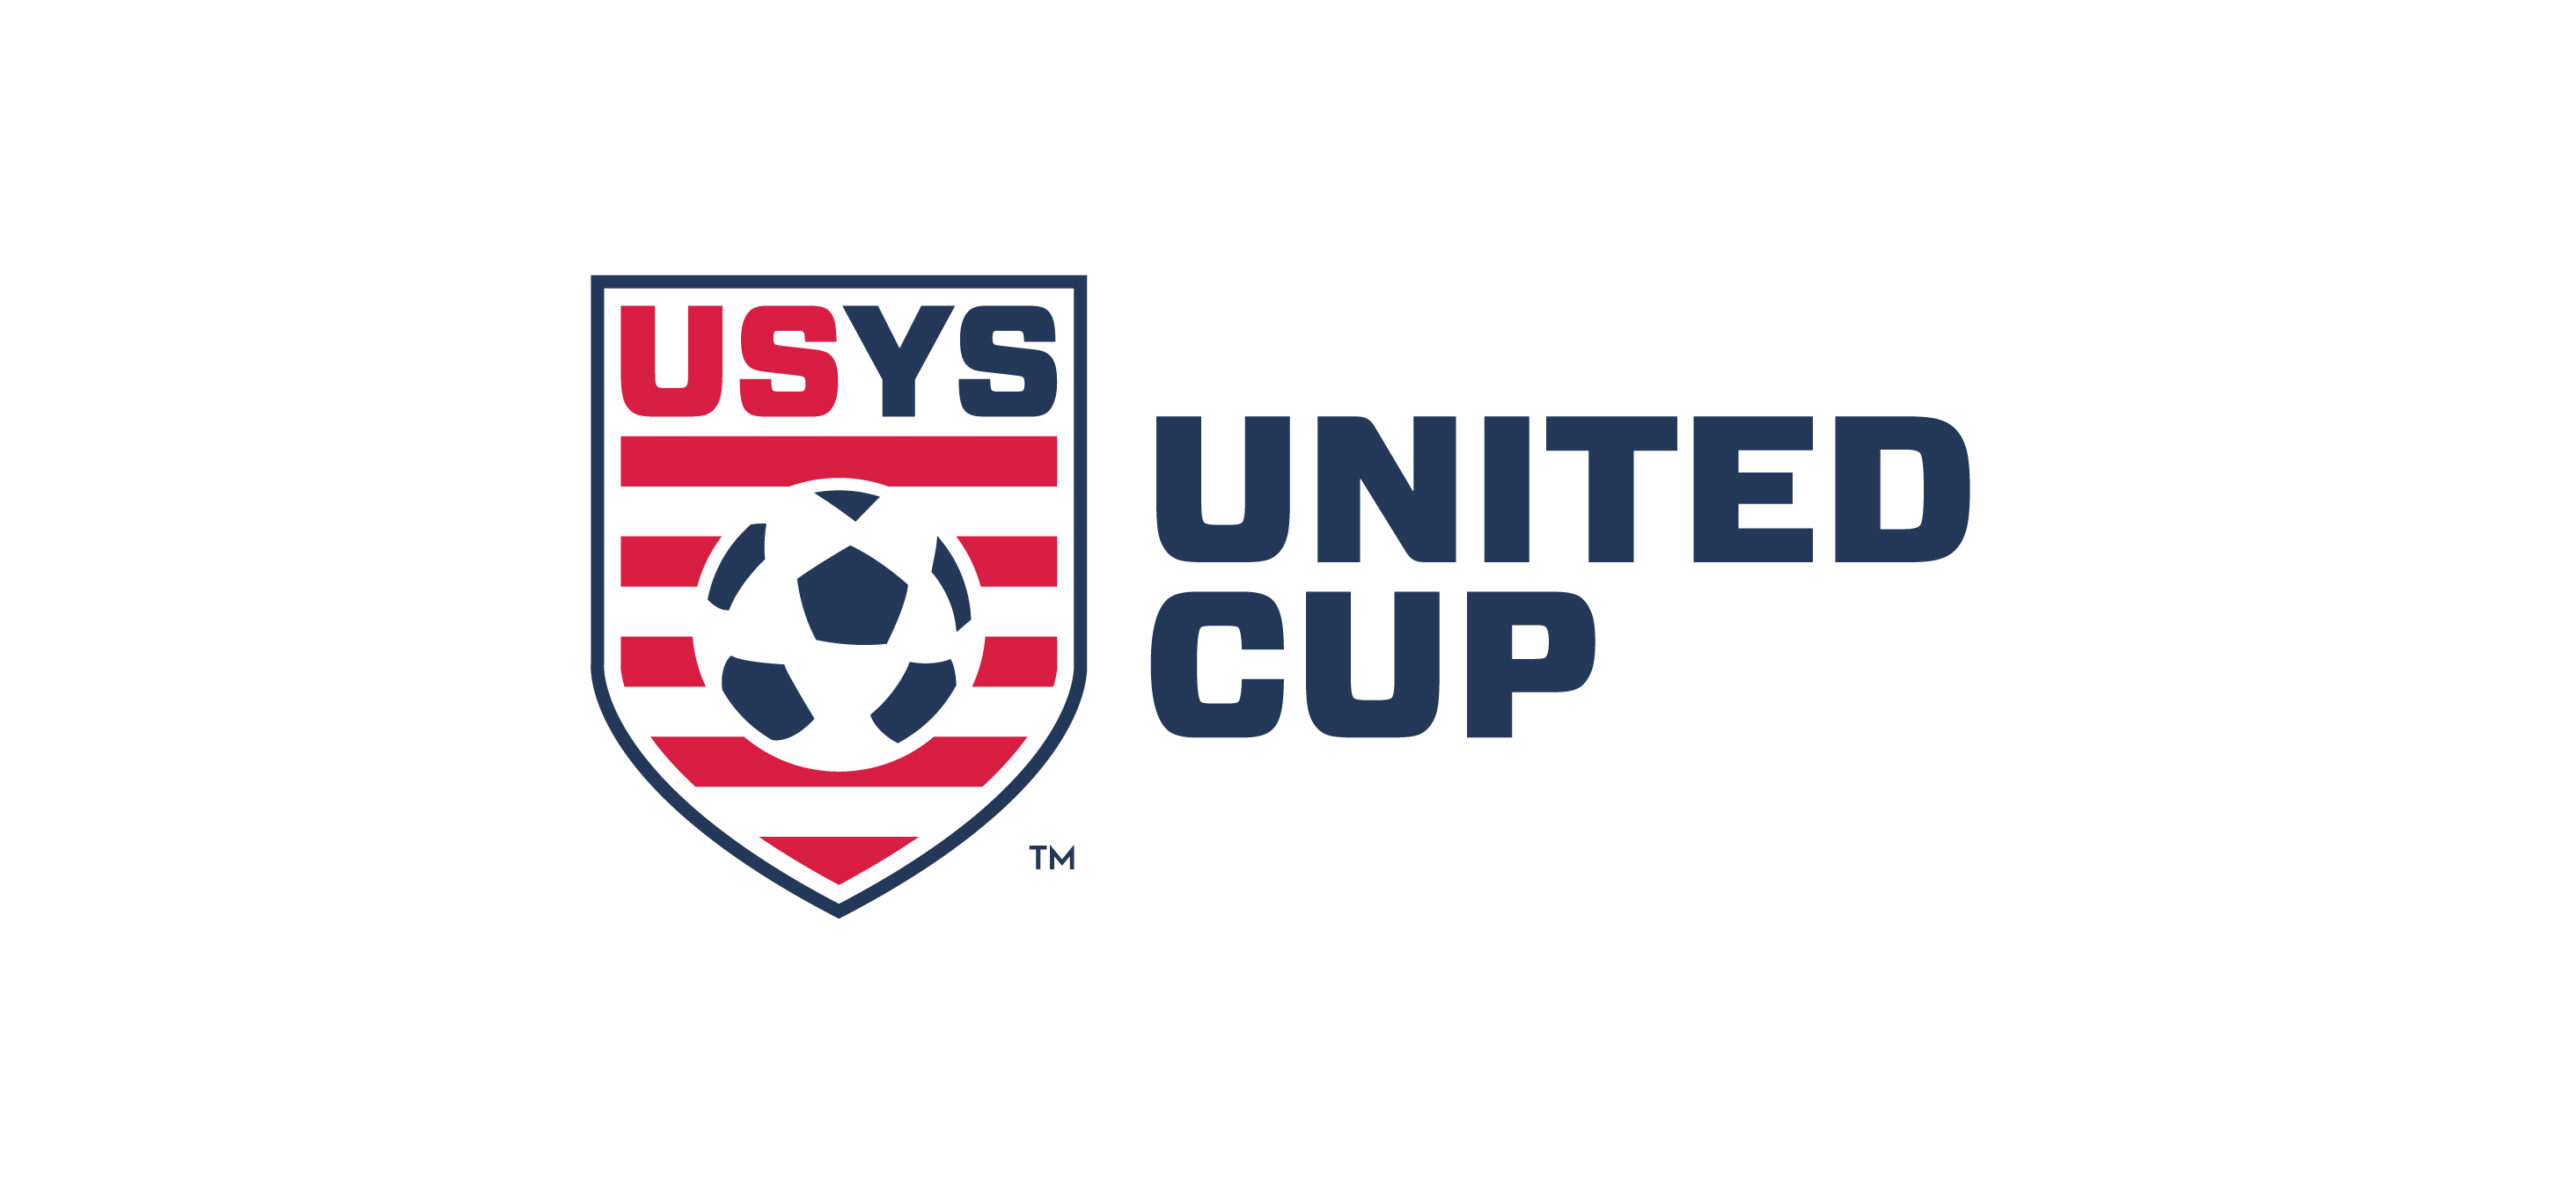 United States Youth Soccer presents the United Cup!